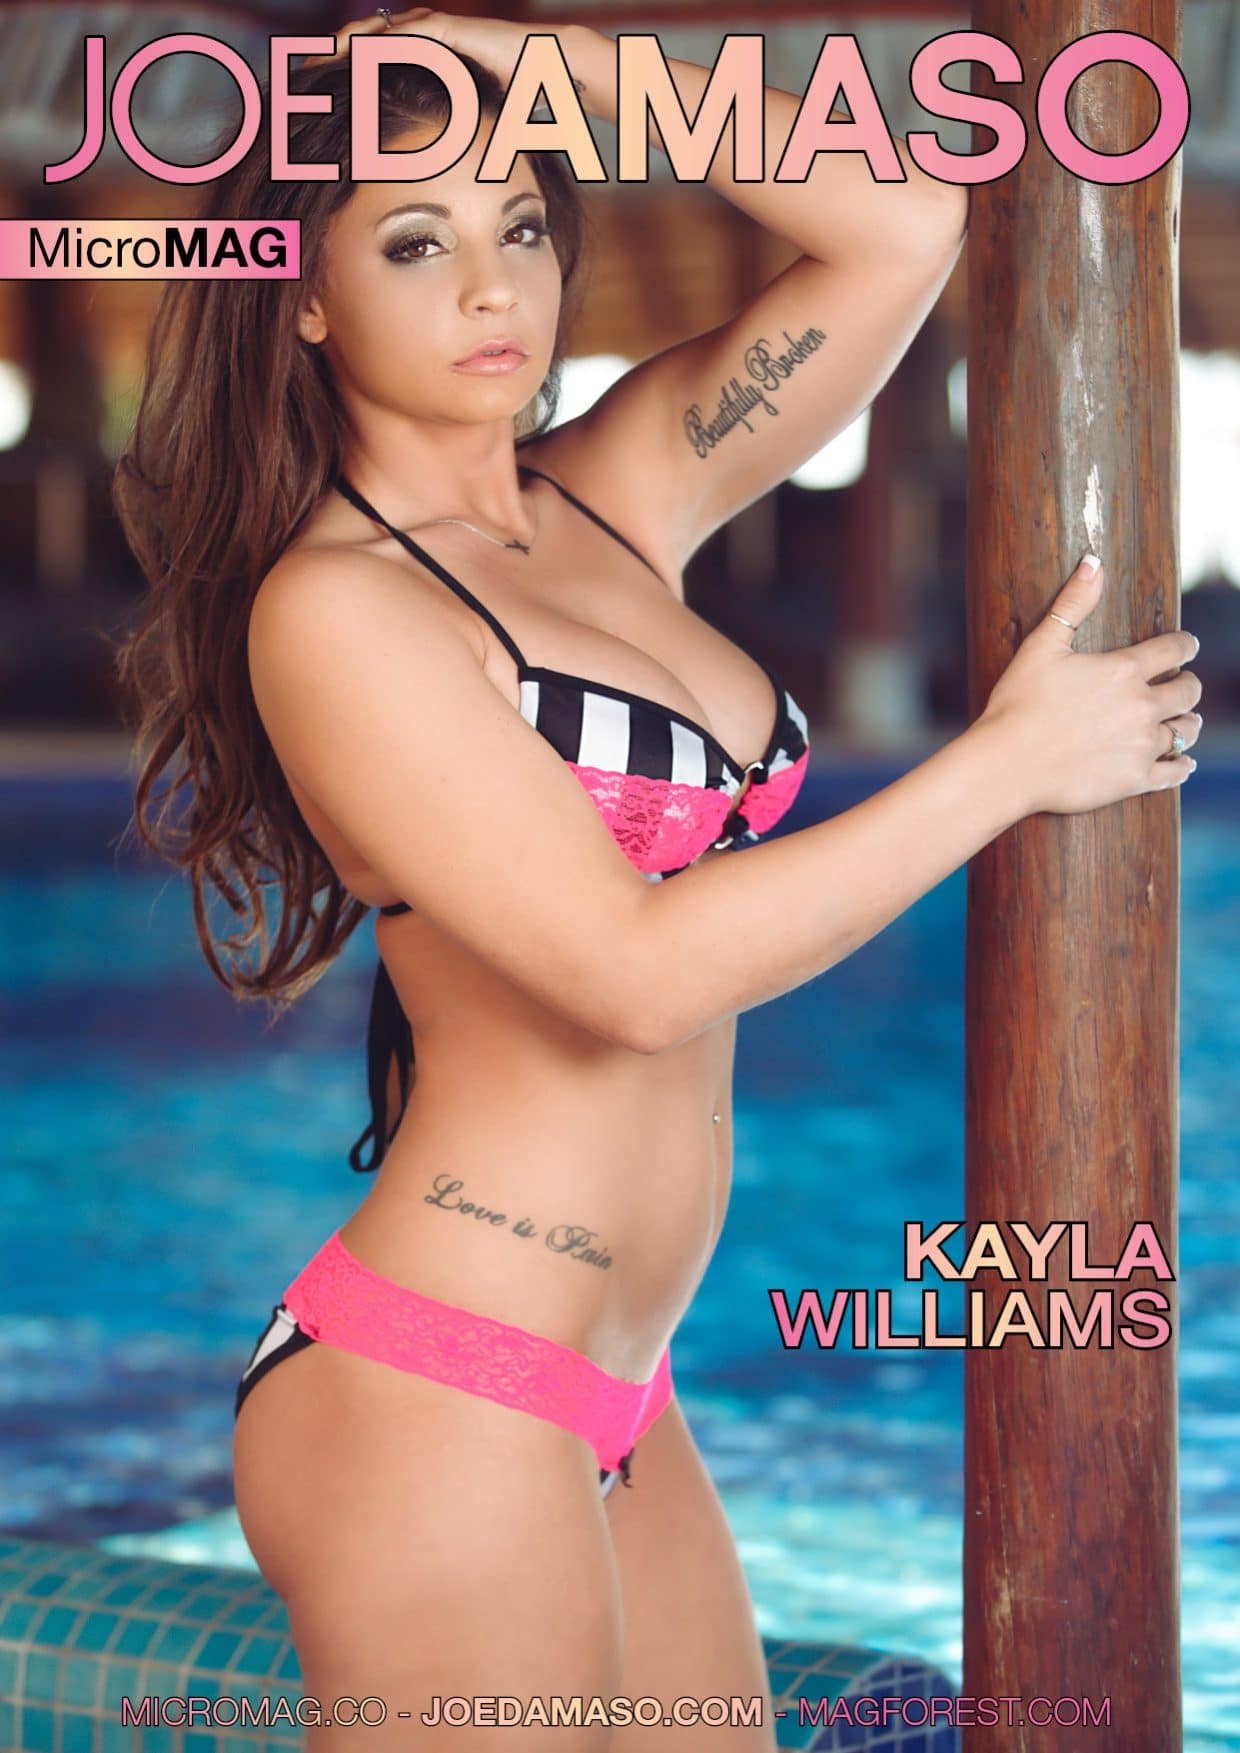 Joe Damaso Micromag – Kayla Williams